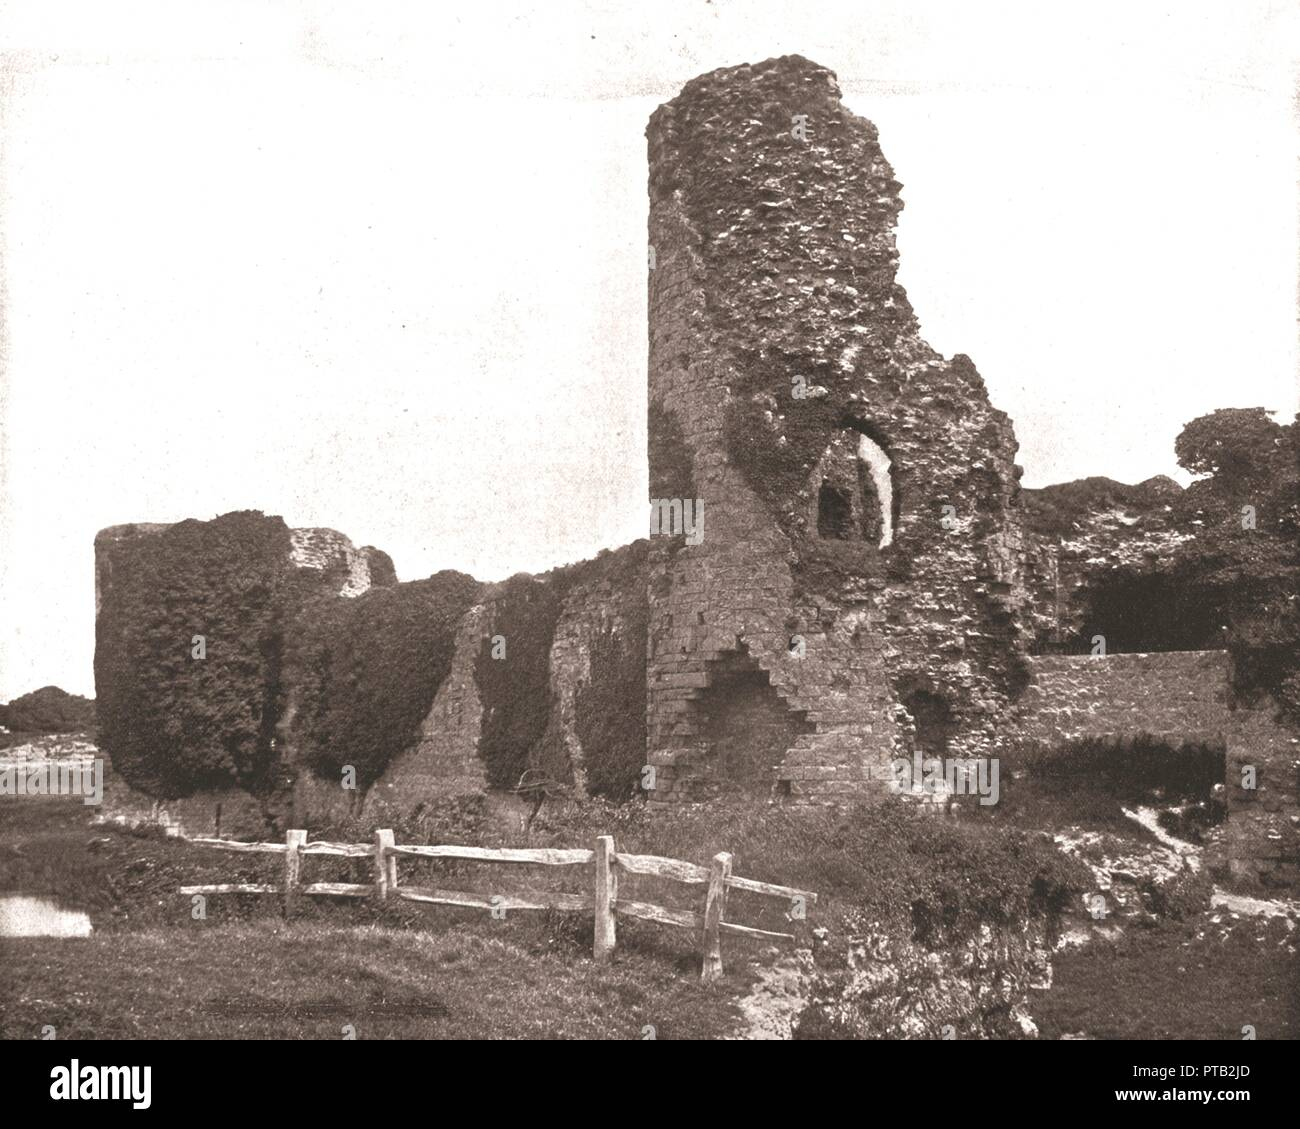 Pevensey Castle, Sussex, 1894. Medieval castle and former Roman Saxon Shore fort. A castle was first built at Pevensey early in the 4th century by the Romans, but it was destroyed by Saxon invaders in the late 5th century. Left derelict for some 600 years, the castle was then rebuilt by Harold Godwinson, Earl of Wessex (later King Harold of England). The Normans made some additions to the castle after 1066 but by Elizabethan times it had fallen into disrepair. From Beautiful Britain; views of our stately homes. [The Werner Company of Chicago, 1894] - Stock Image